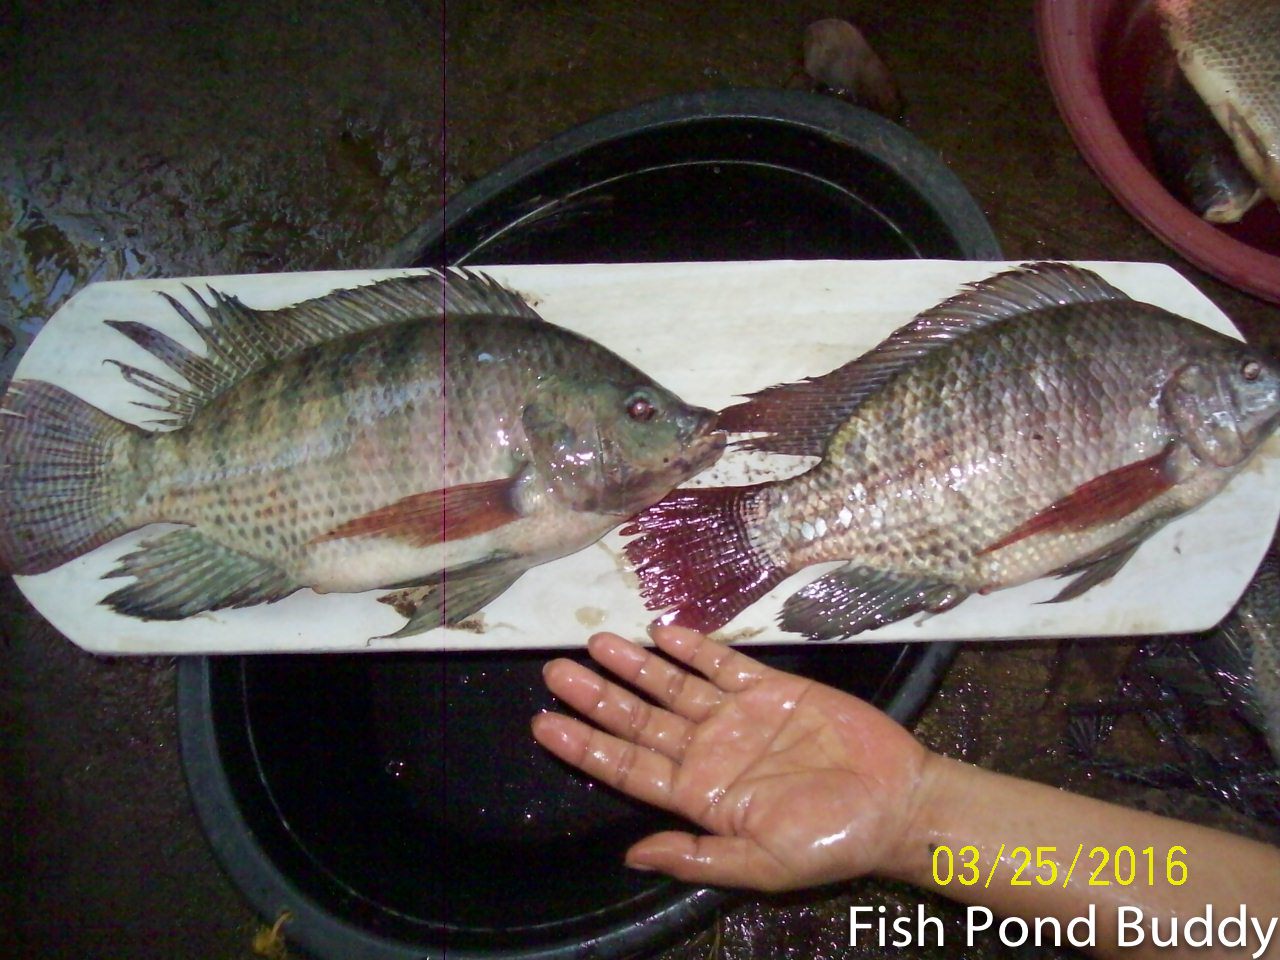 Fish pond buddy how to clean and make sun dried tilapia for How to clean a fish pond